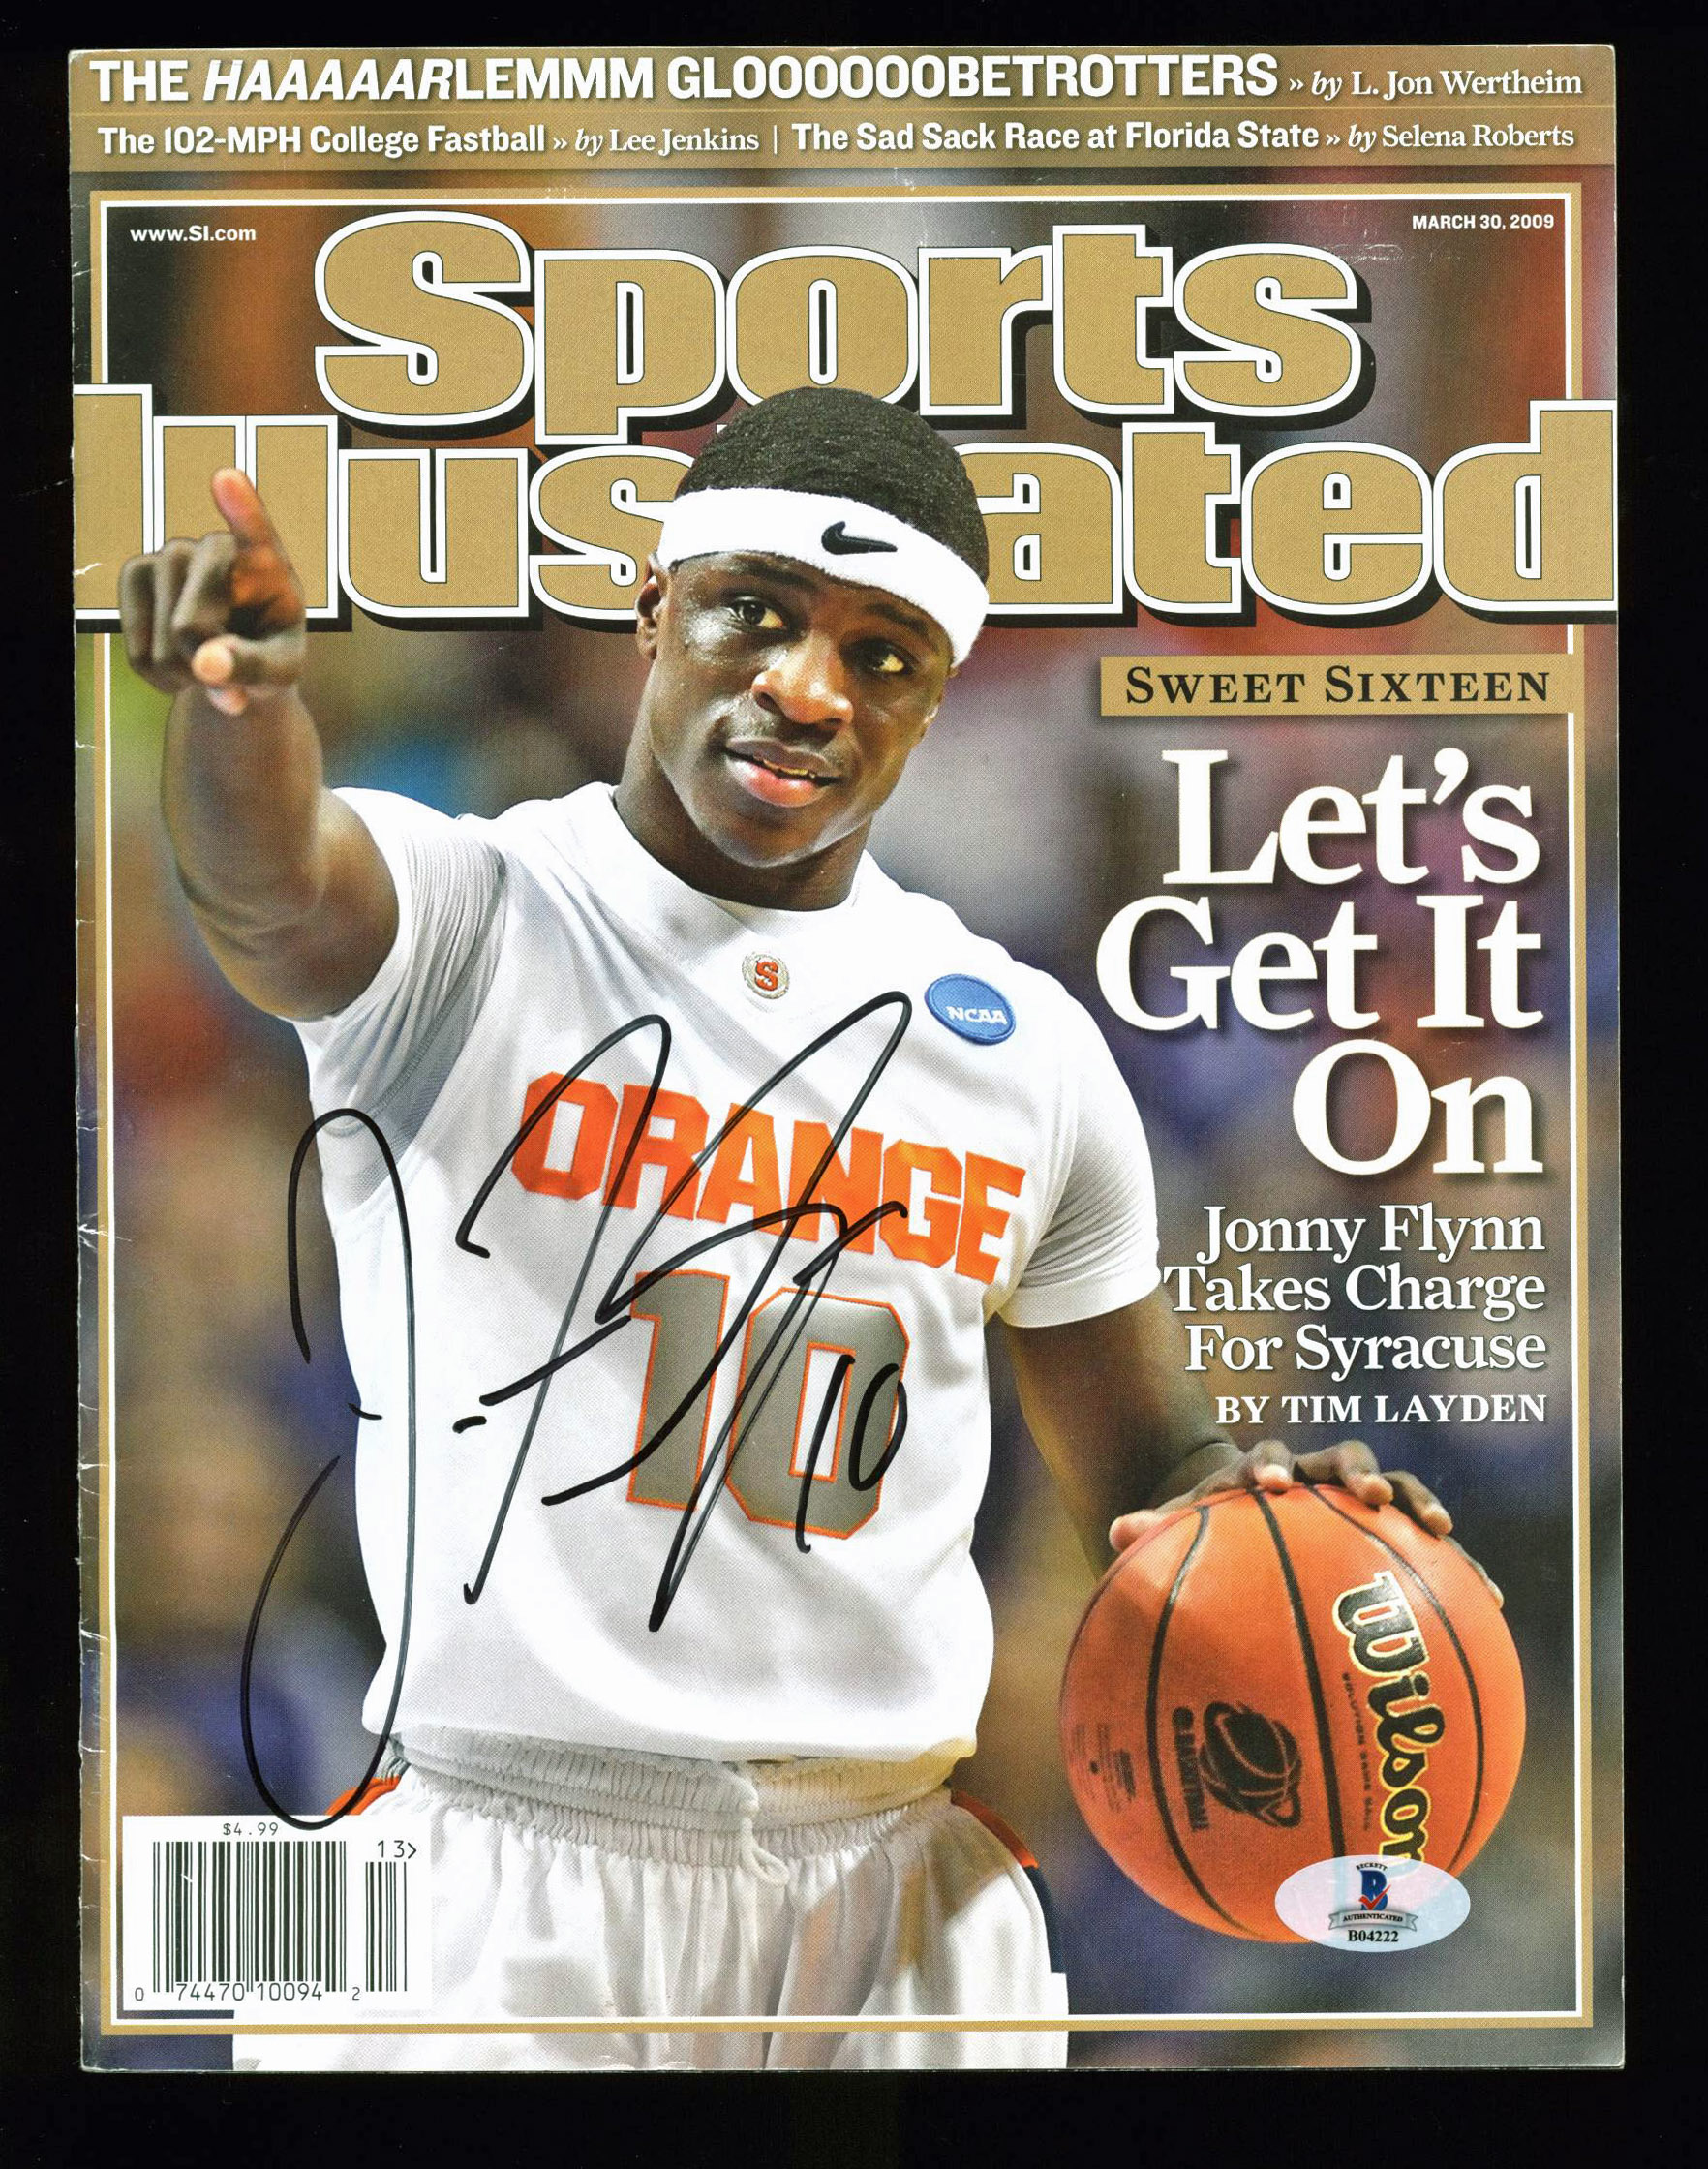 Details About Syracuse Jonny Flynn Signed Sports Illustrated 2009 Magazine Bas B04222